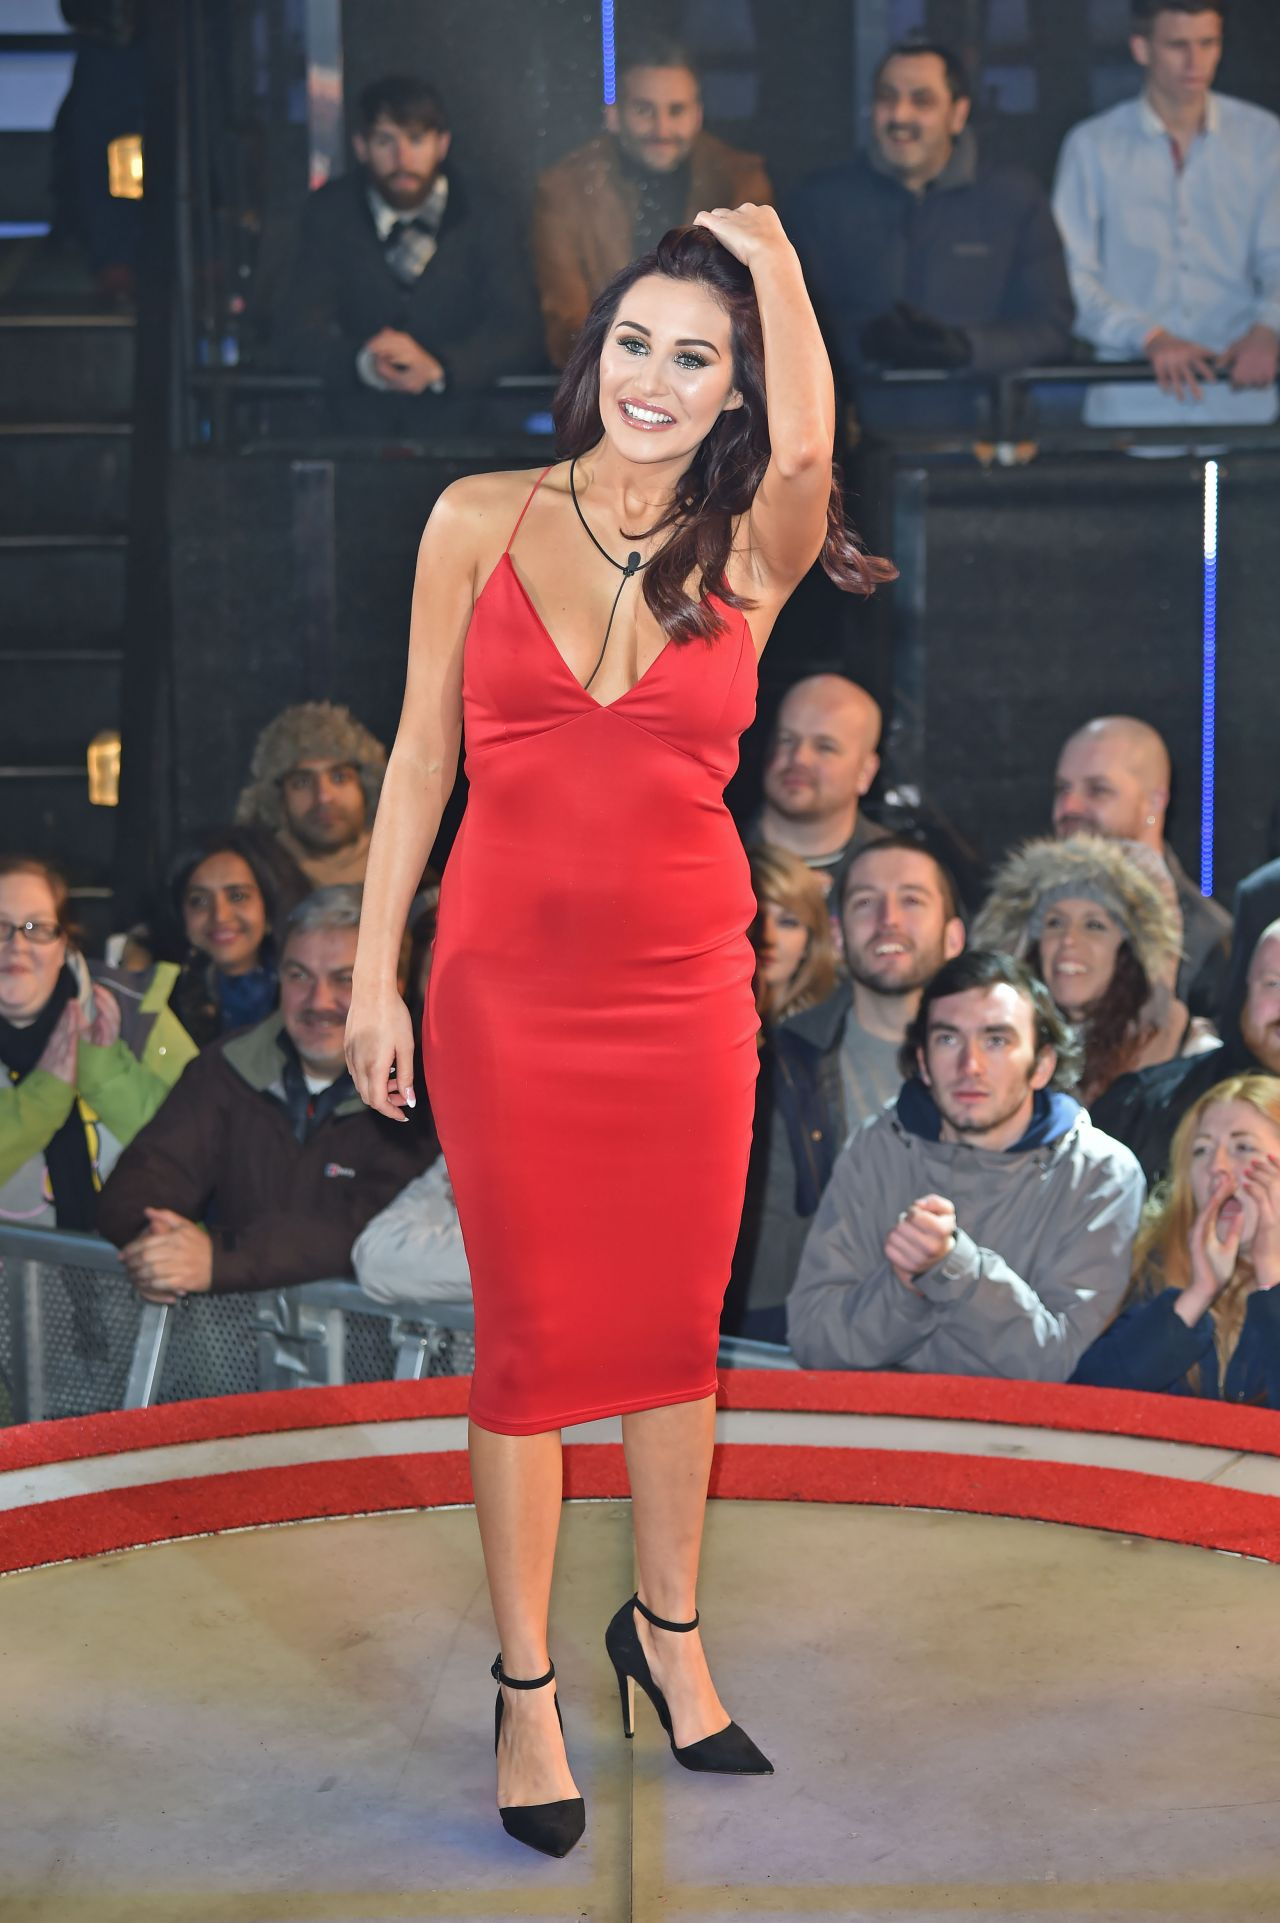 13 Best Celebrity Big Brother BBC images | Celebrity big ...